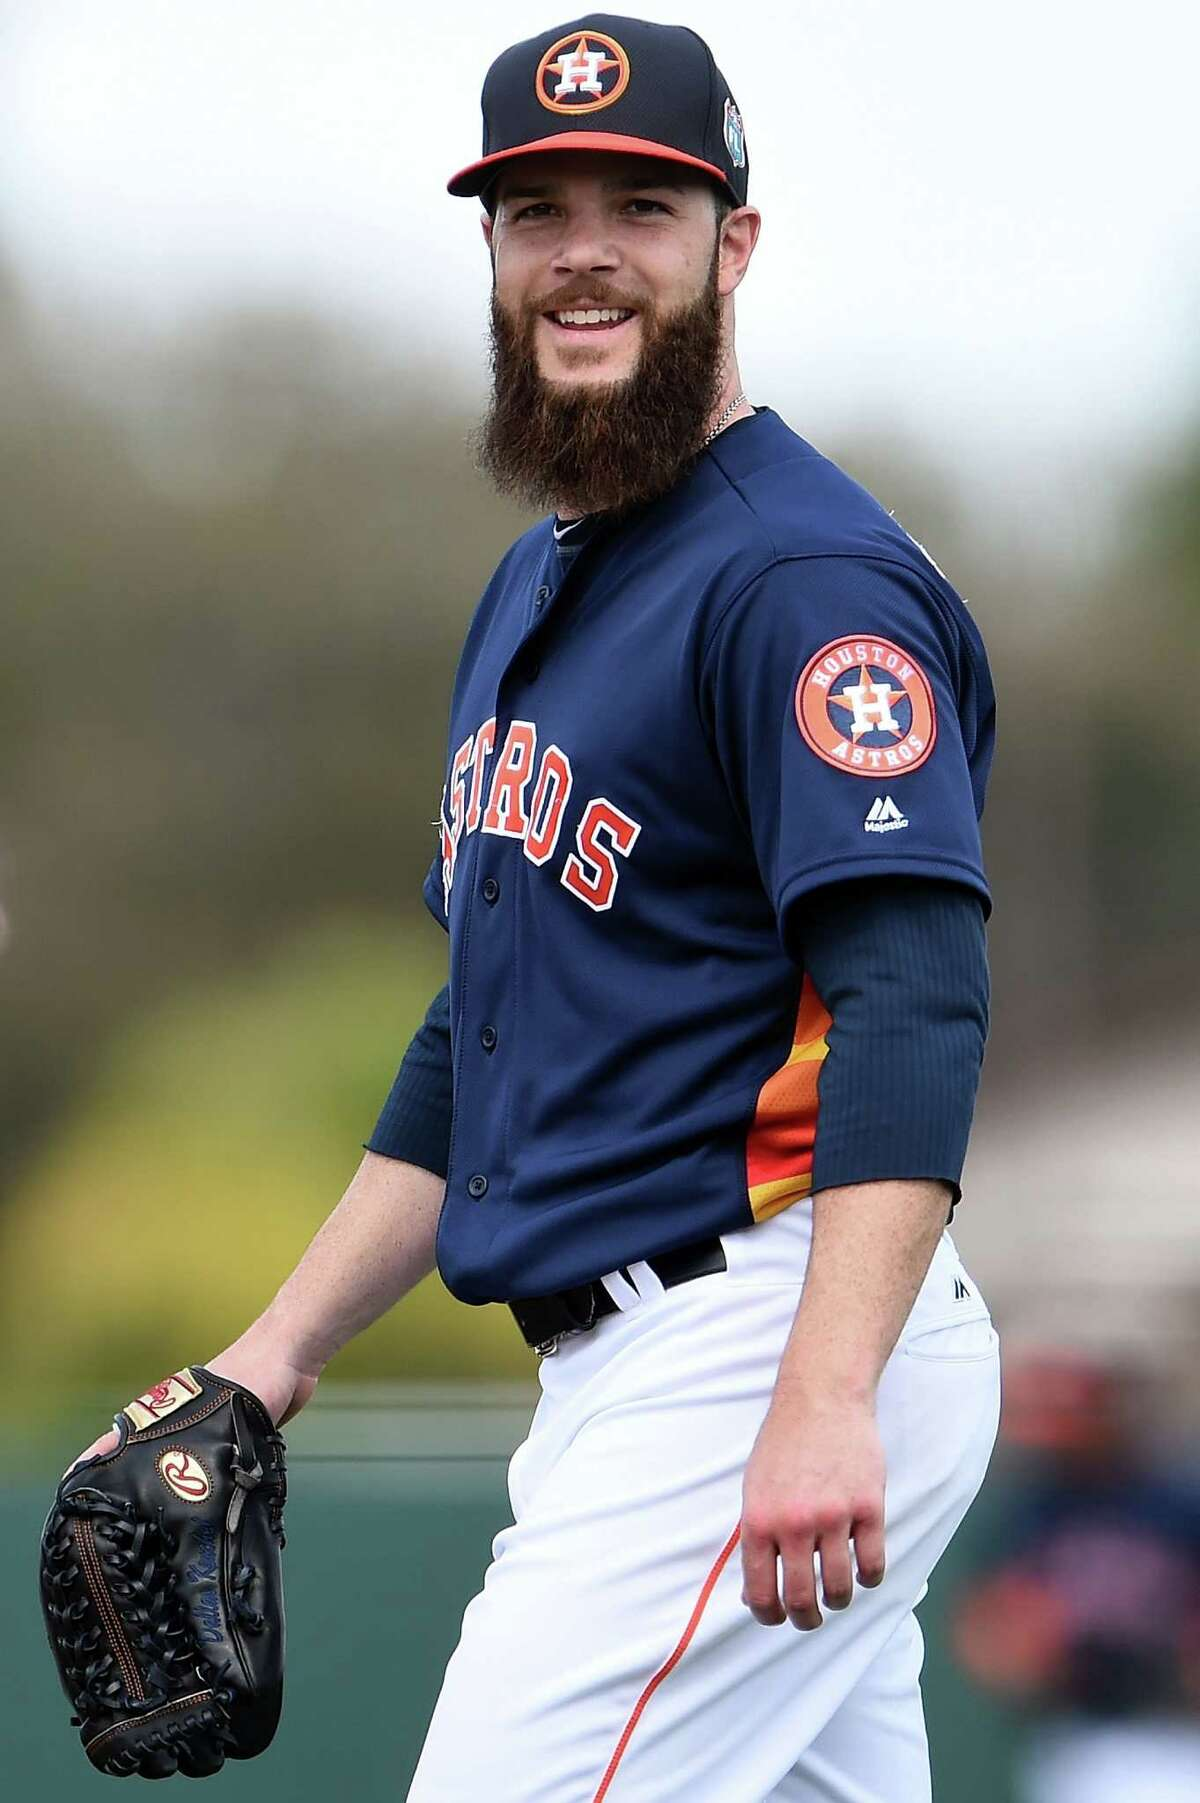 KISSIMMEE, FL - MARCH 09: Dallas Keuchel #60 of the Houston Astros walks to the dugout during the second inning of a spring training game against the Atlanta Braves at Osceola County Stadium on March 9, 2016 in Kissimmee, Florida.